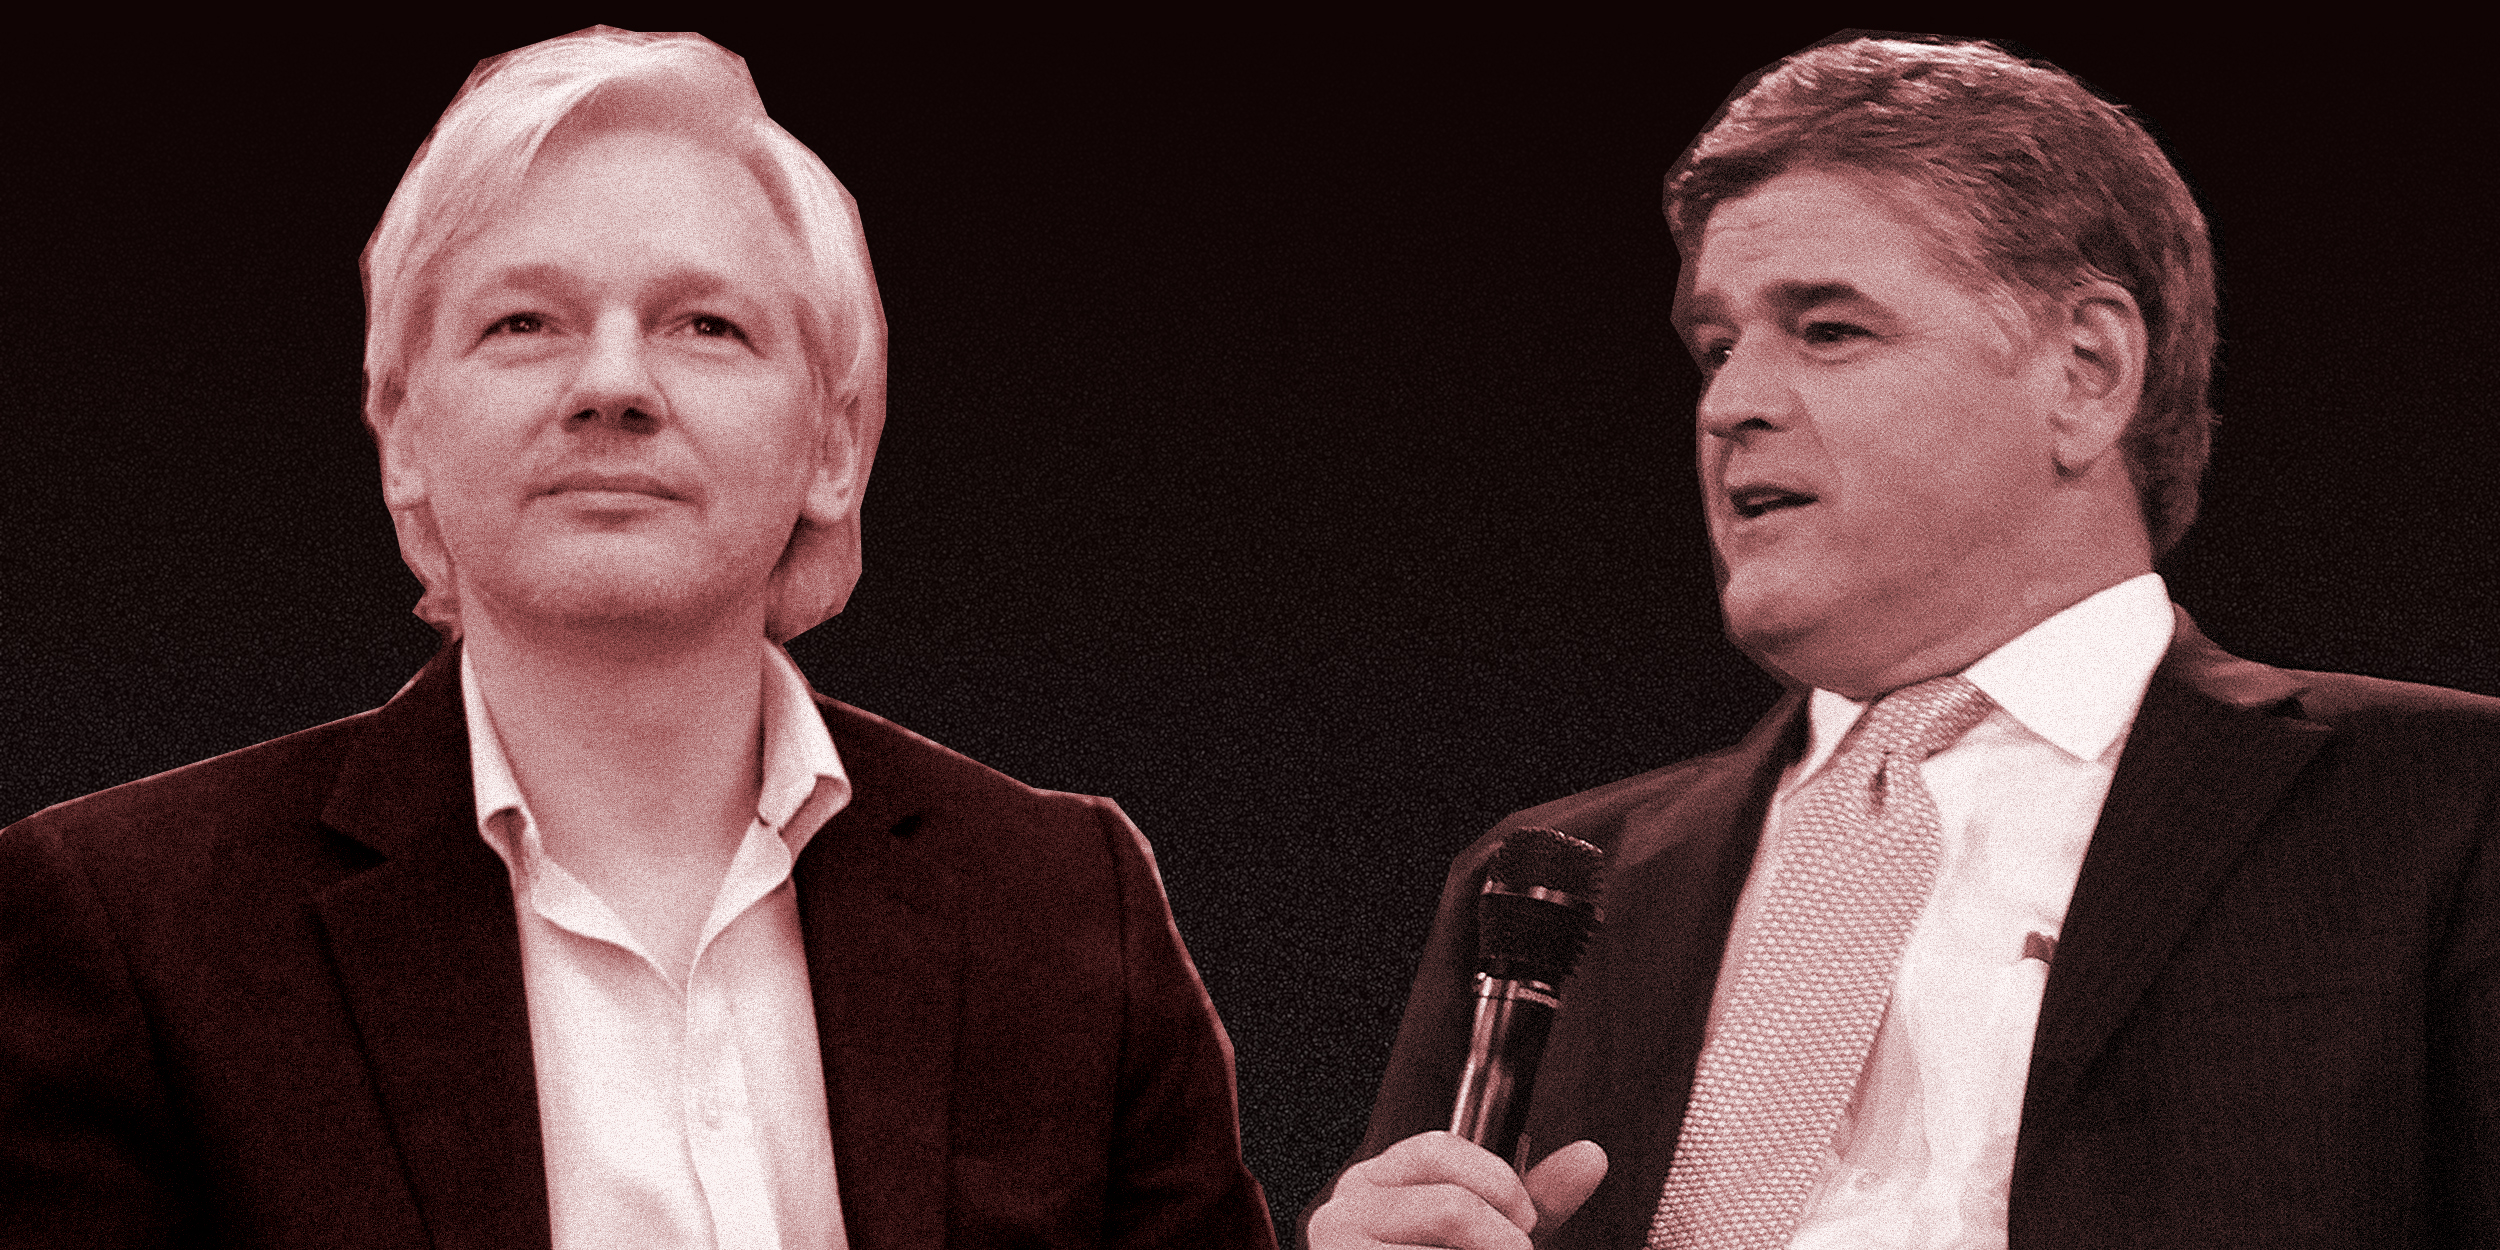 Hannity Propositions Wikileaks's Julian Assange to Guest Host His Radio Show